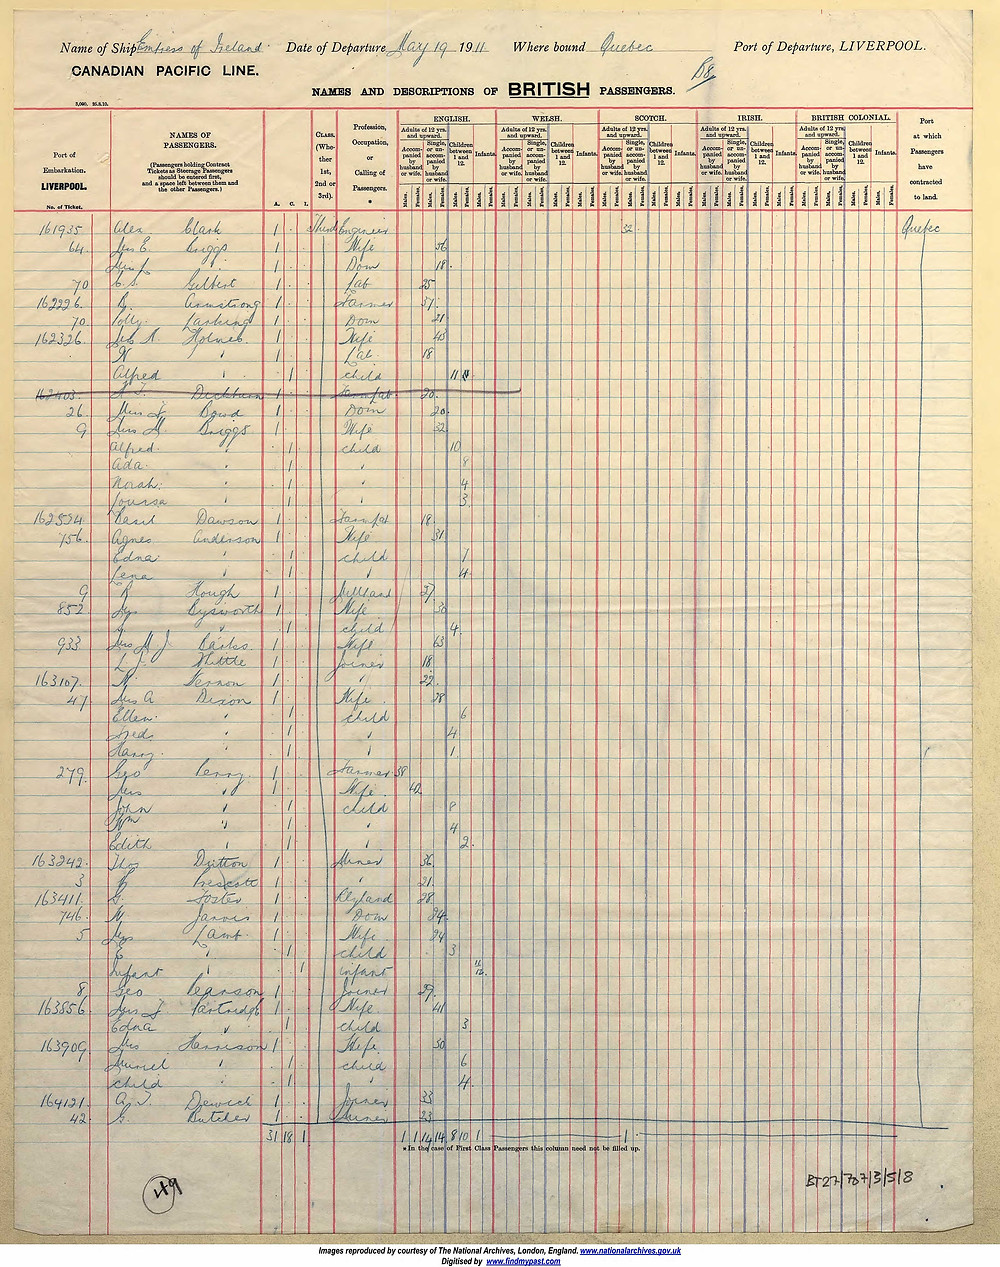 The departing passenger list for the Empress of Ireland ship on May 19th 1911.  Winifred Marion Jarvis is 3/4 of the way down the page.